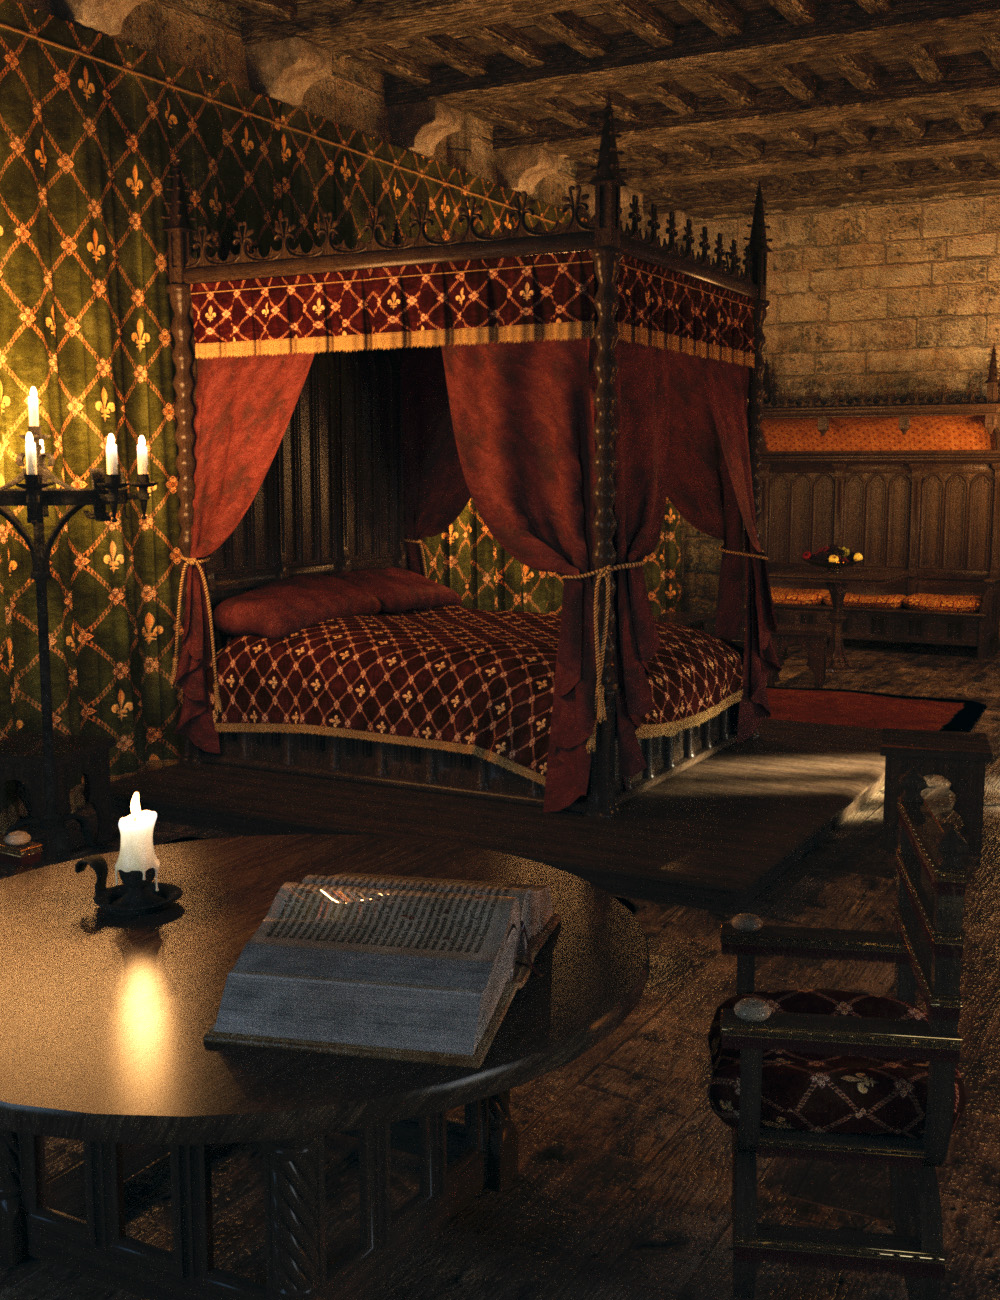 MICK-Bedroom by: Faveral, 3D Models by Daz 3D